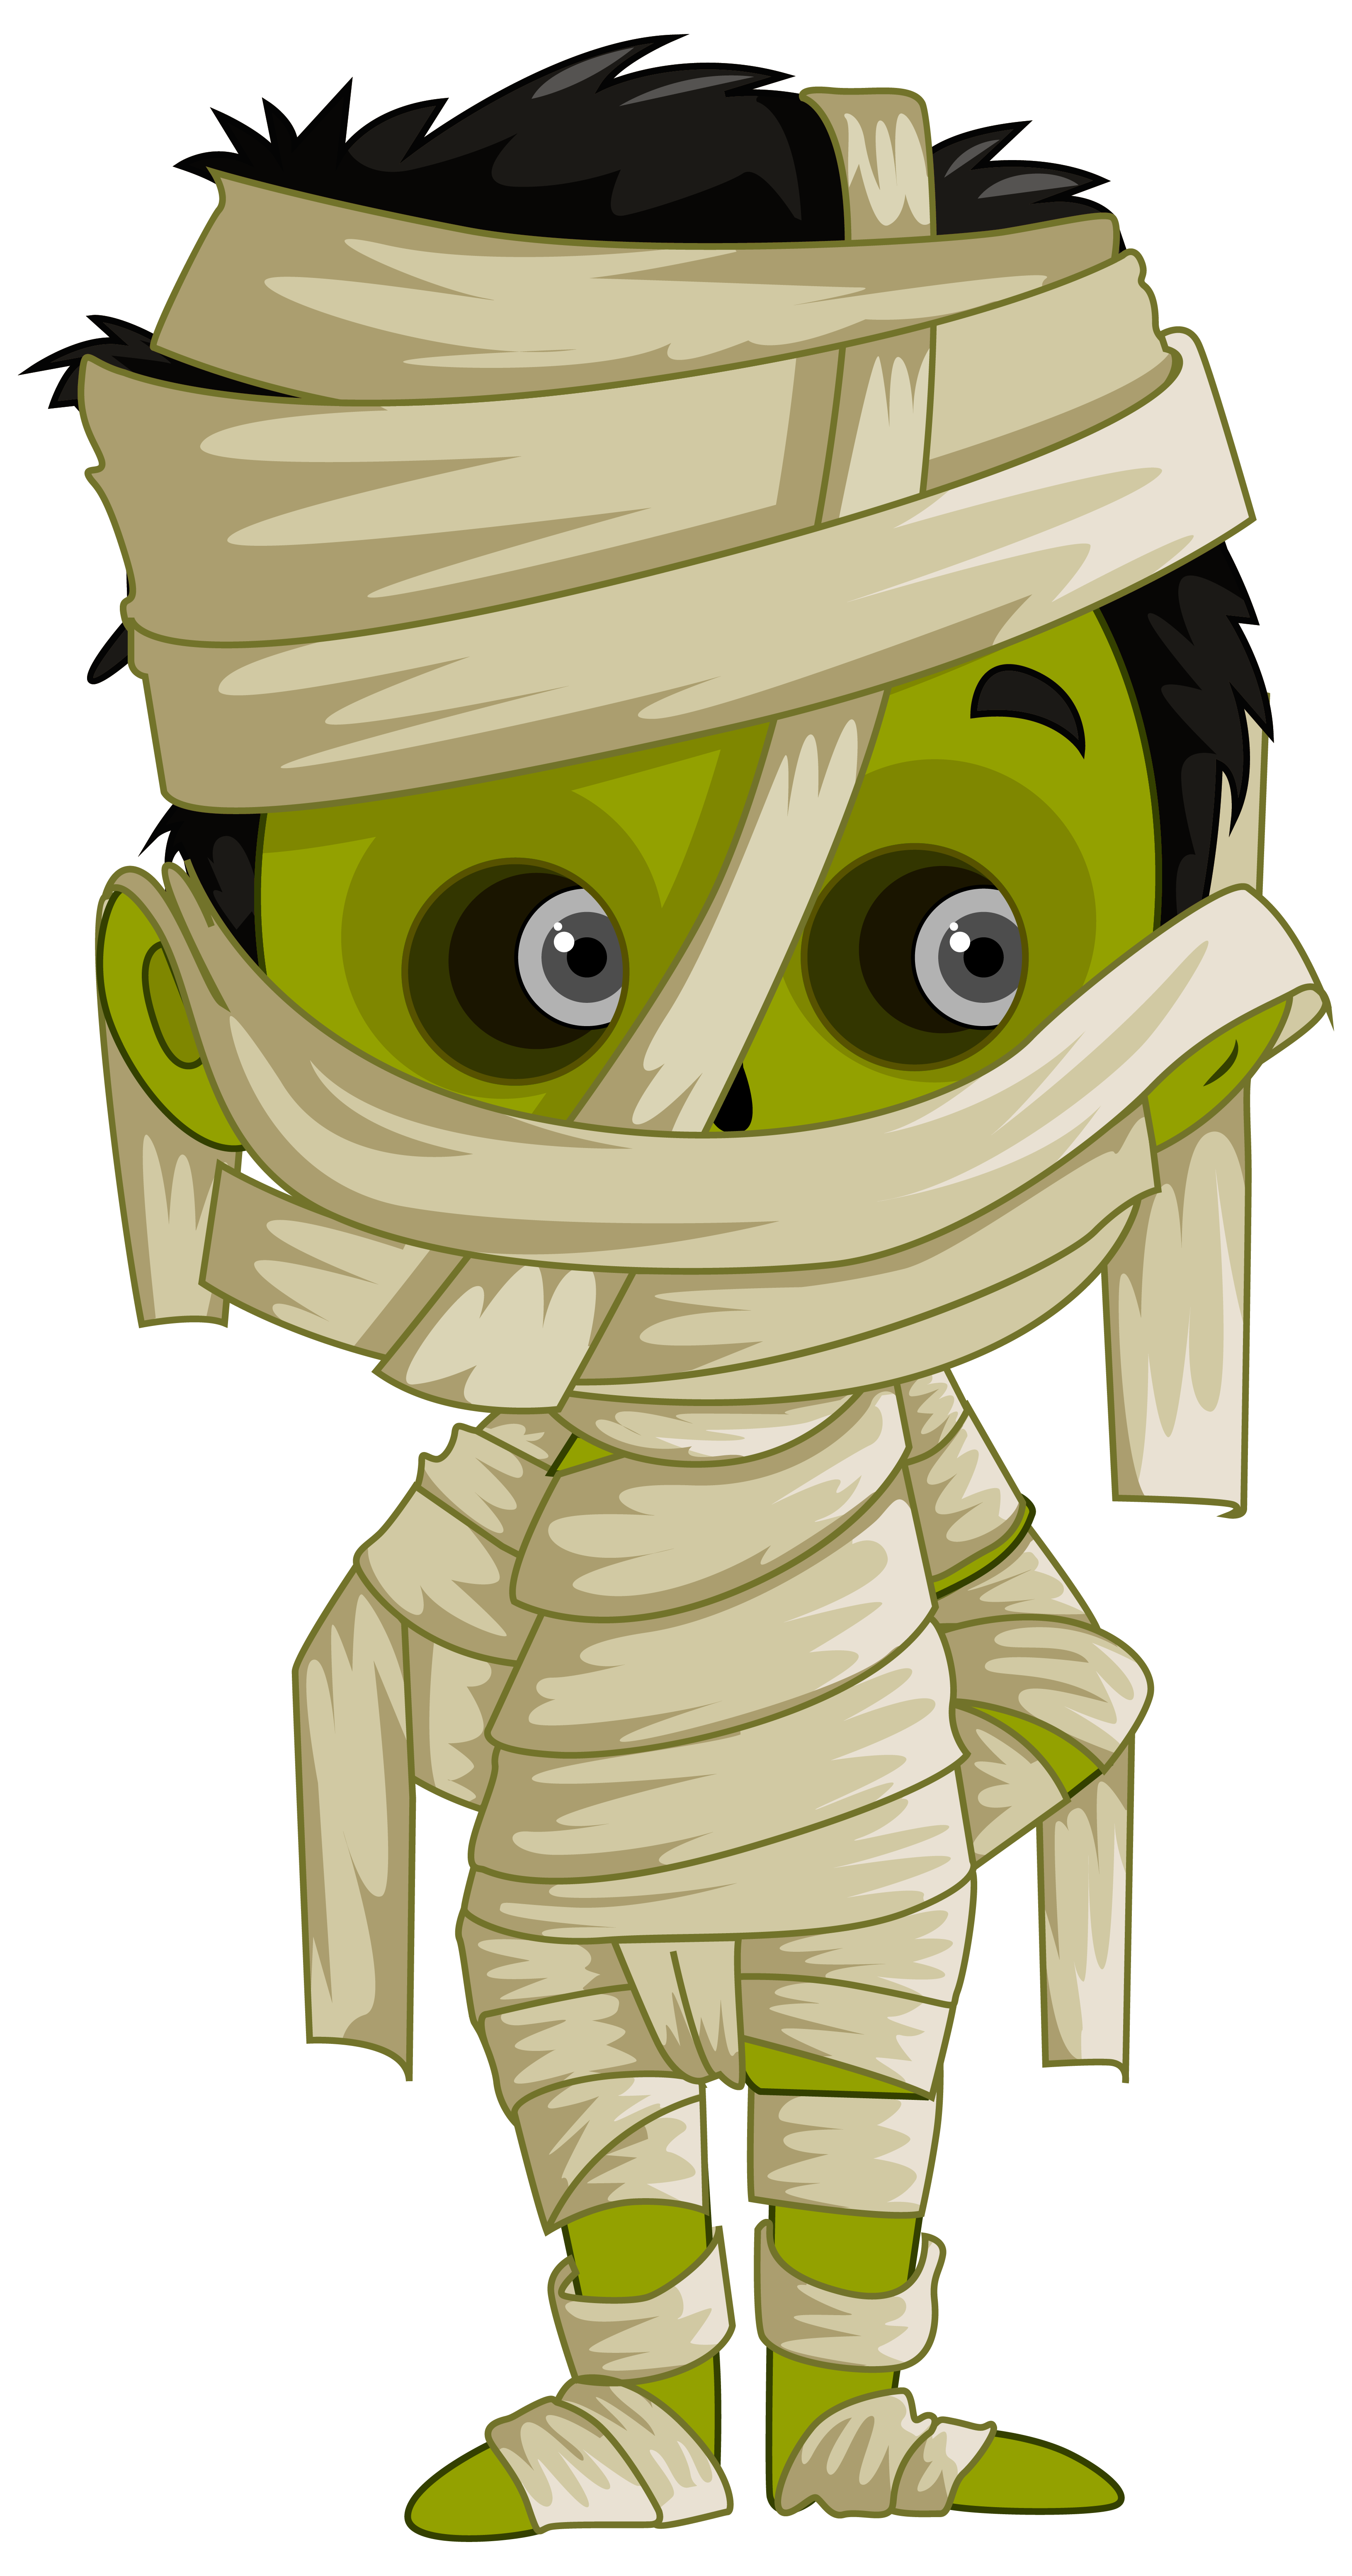 Mummy transparent. Png clipart image gallery